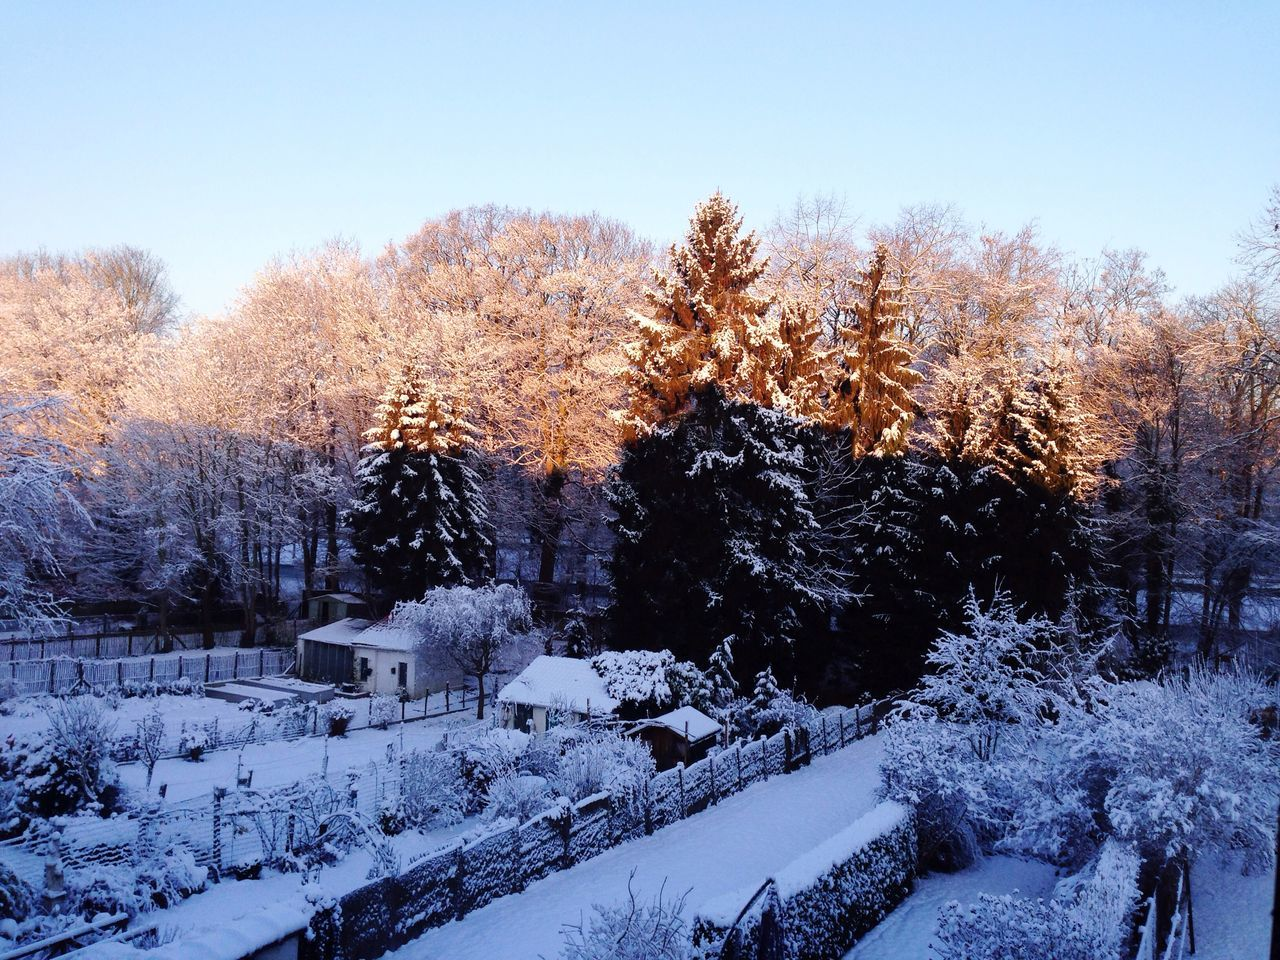 High Angle View Of Houses And Trees On Snow Covered Field During Winter